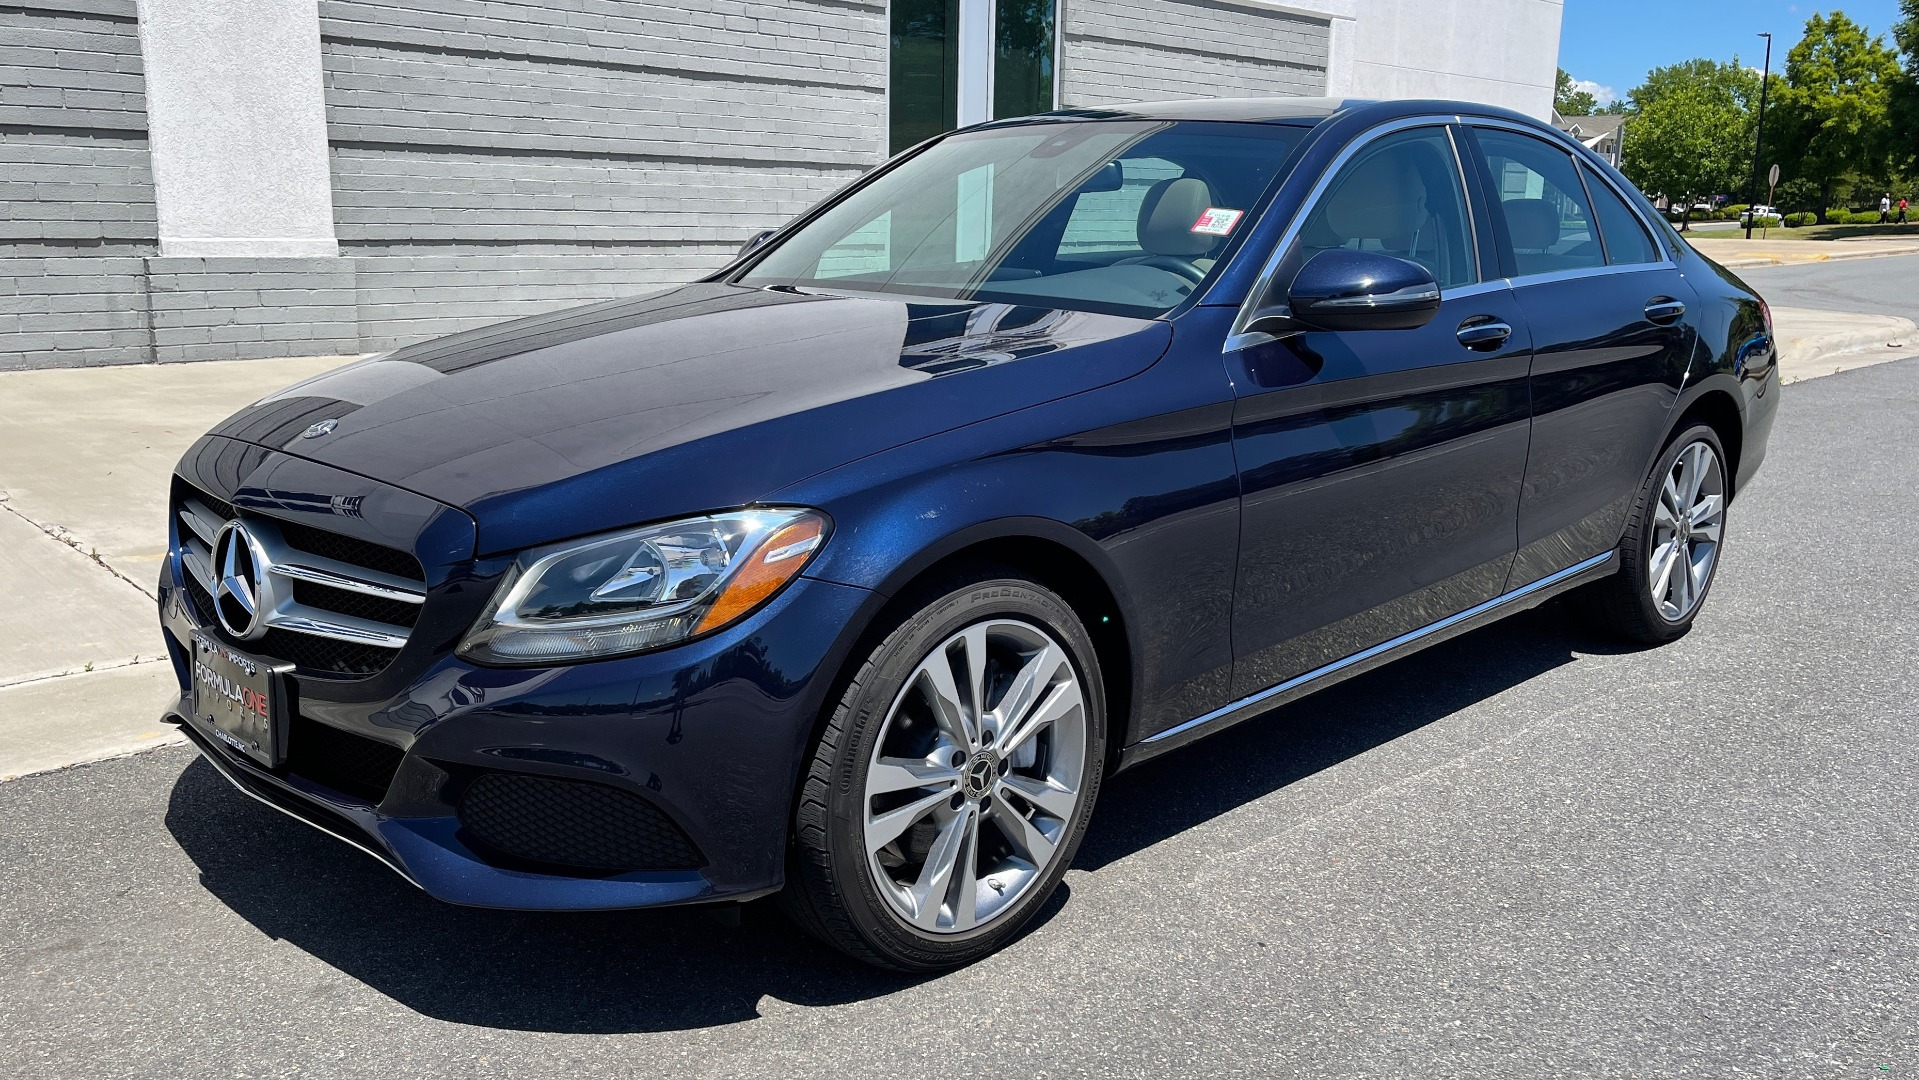 Used 2018 Mercedes-Benz C-CLASS C 300 PREMIUM / KEYLESS-GO / PANO-ROOF / BURMESTER / REARVIEW for sale $29,495 at Formula Imports in Charlotte NC 28227 3